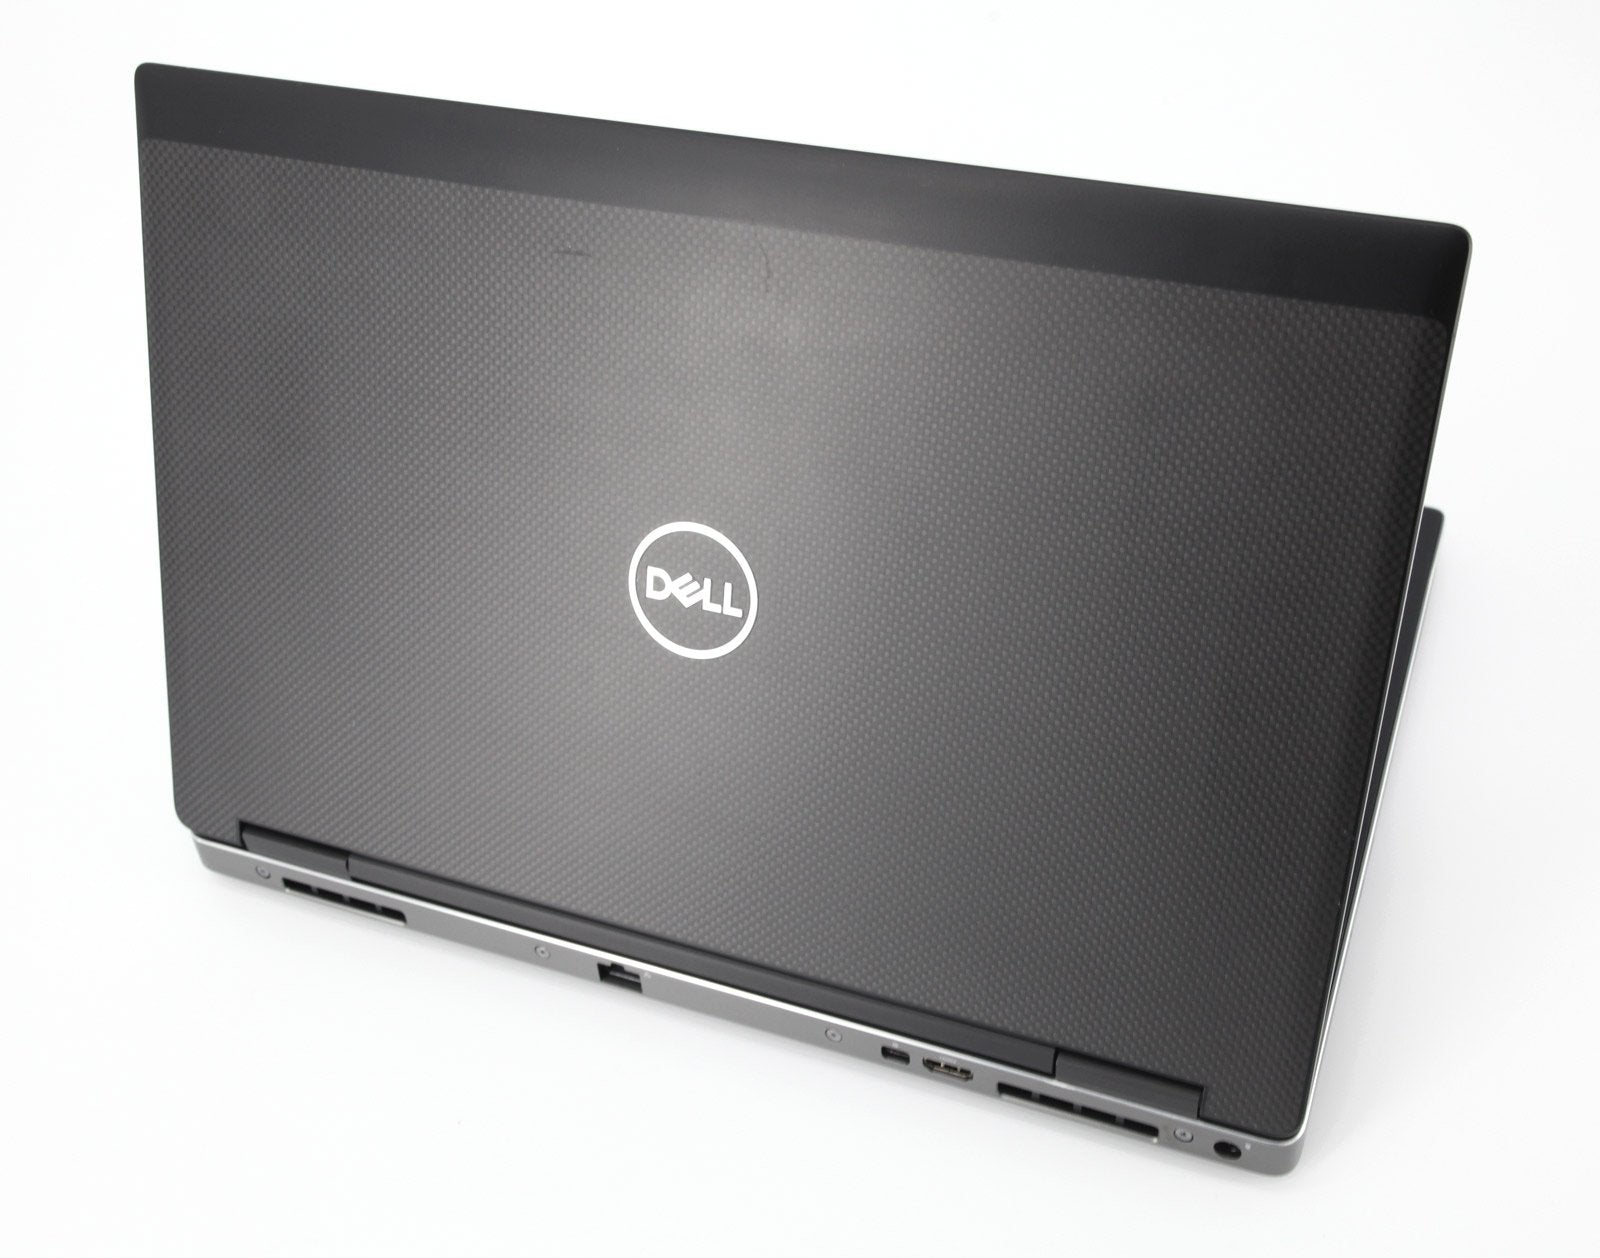 Dell Precision 7530 Laptop Xeon-2186M 64GB RAM, 512GB, NVIDIA P3200 Warranty VAT - CruiseTech